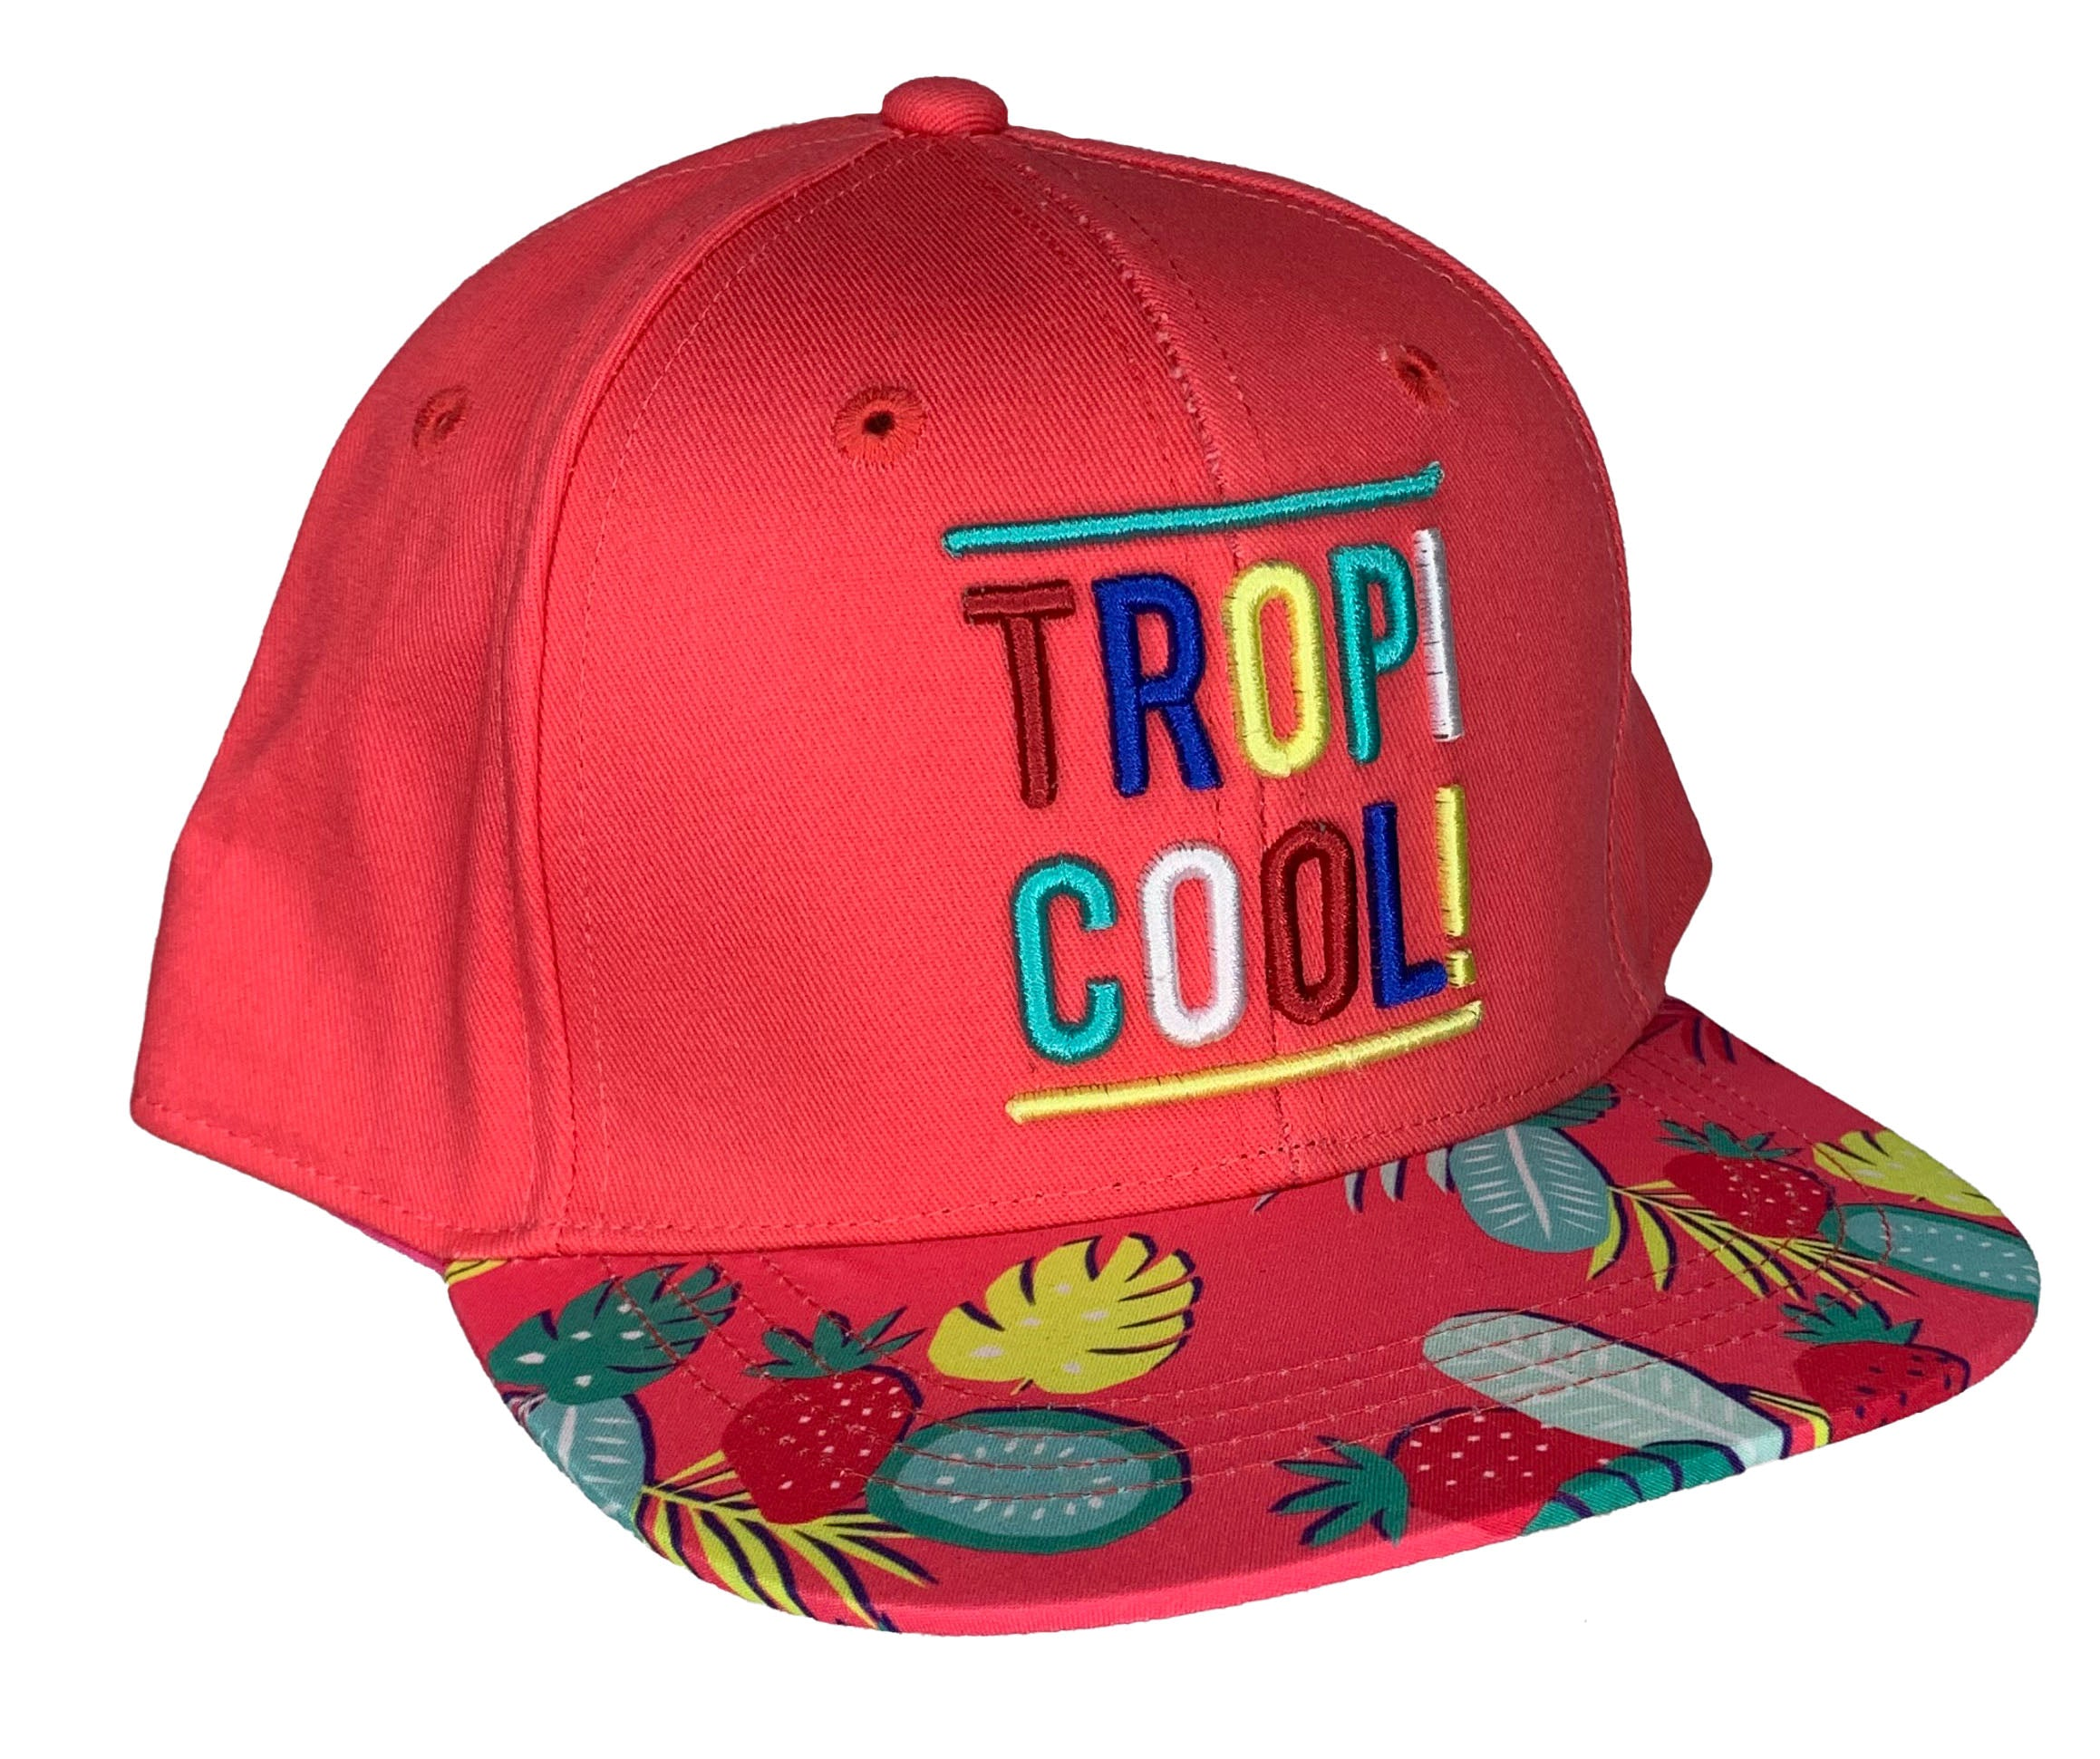 Maximo Girls Cap Tropi Cool 03503-919776